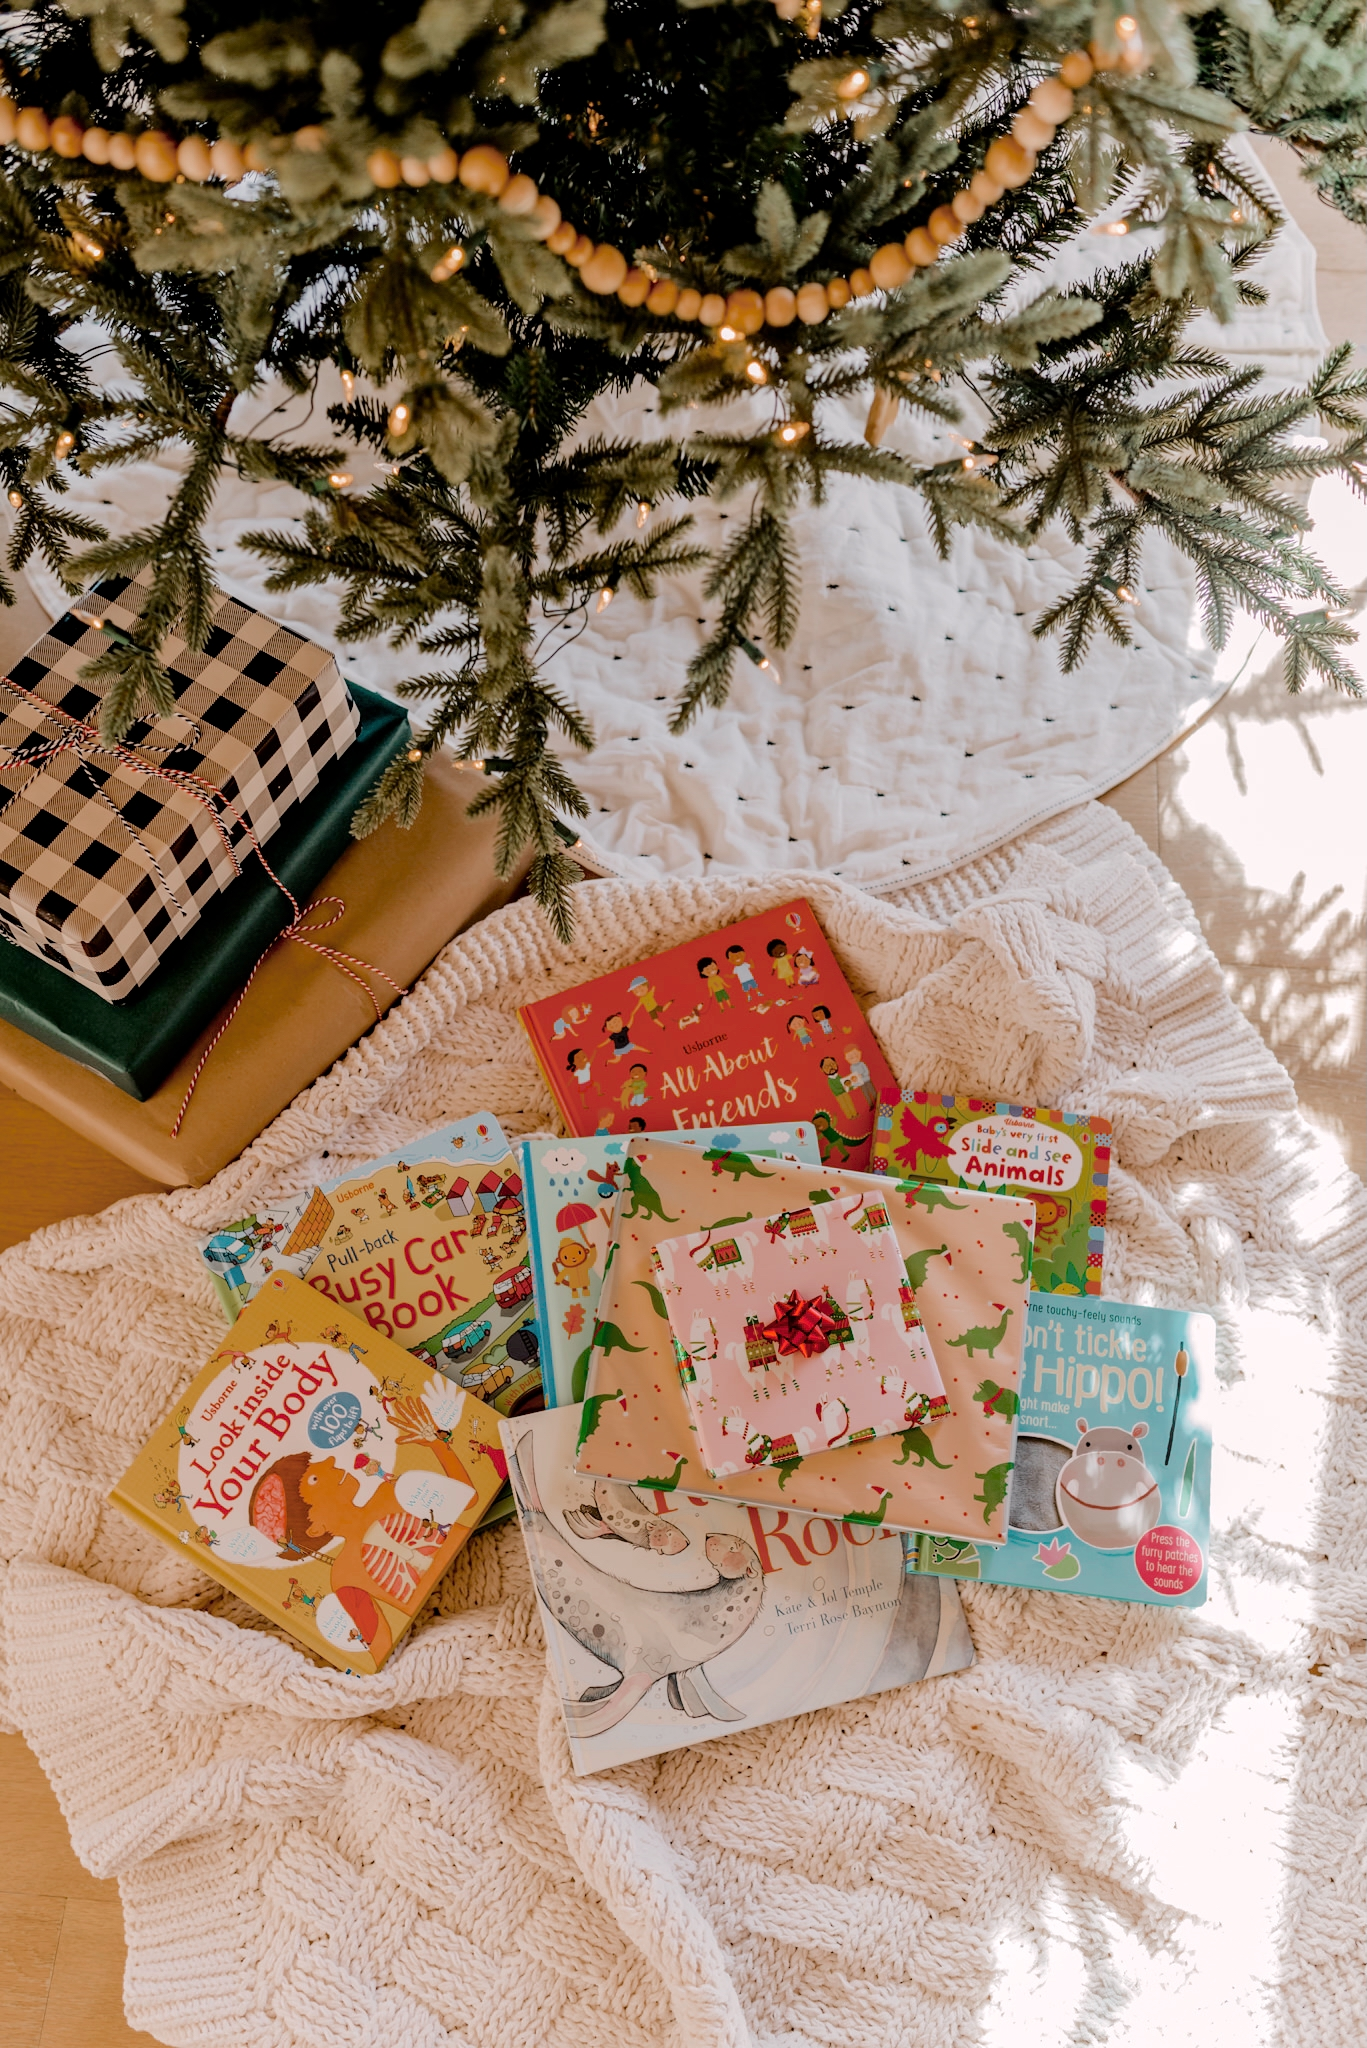 12 days of books for Christmas | 12 Days of Books by popular San Diego lifestyle blog, Navy Grace: image of 12 books under a Christmas tree.